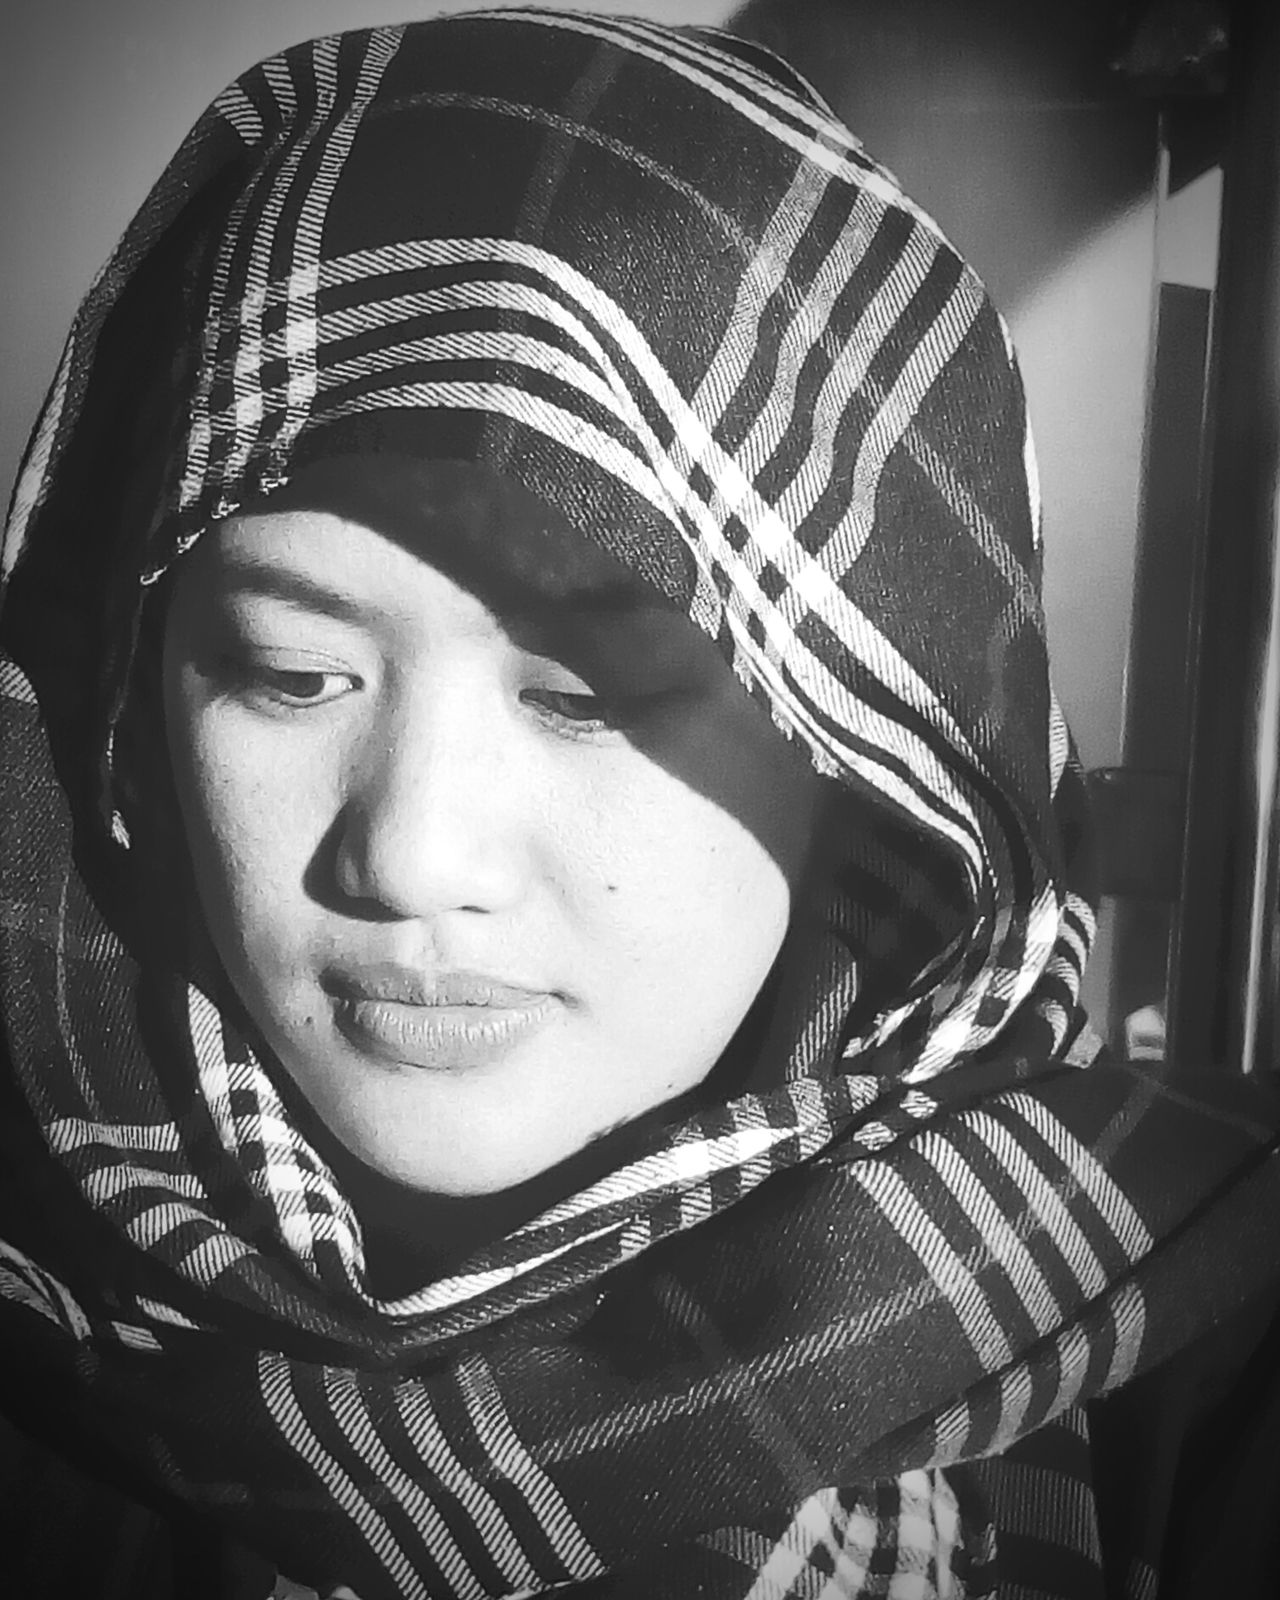 Tarha. Tarha Headshot Close-up One Person One Woman Only Adult NoOtherColor Black And White Portrait Blackandwhite Photography Blackandwhitephoto Black & White First Eyeem Photo First Open Edit Firsteyeemphotoofmyself